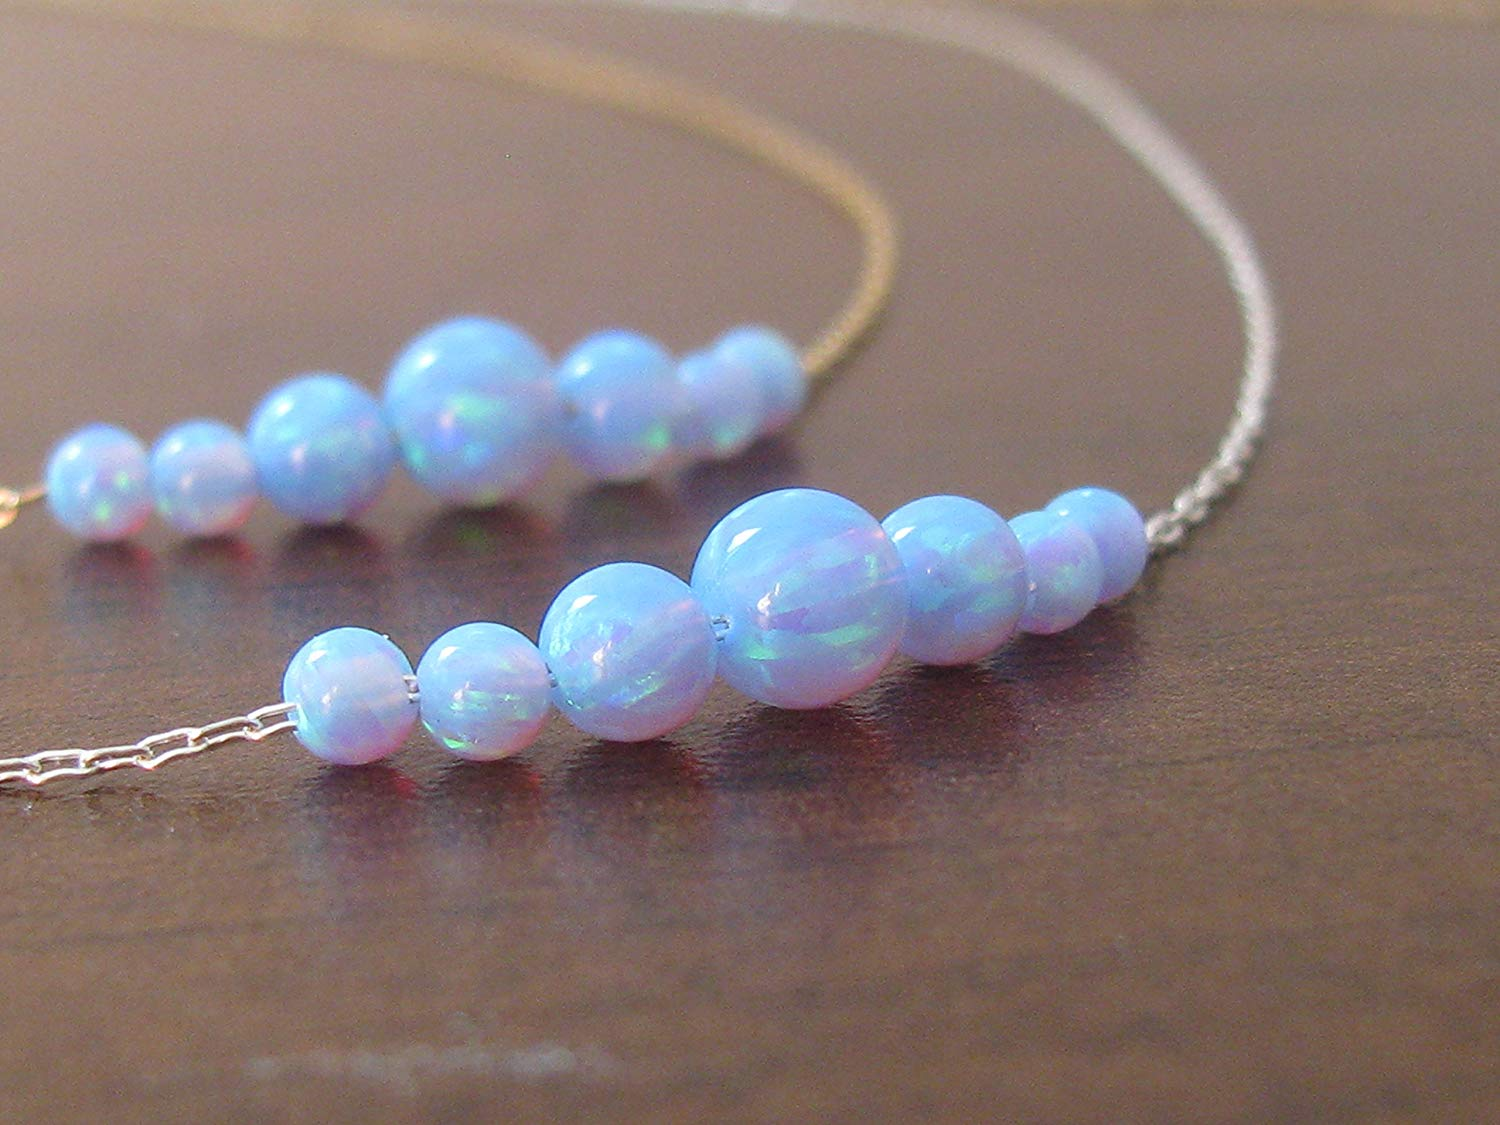 Opal silver necklace, opal ball necklace, delicate necklace, opal jewelry, tiny dot necklace, opal bead necklace, dot necklace, blue opal